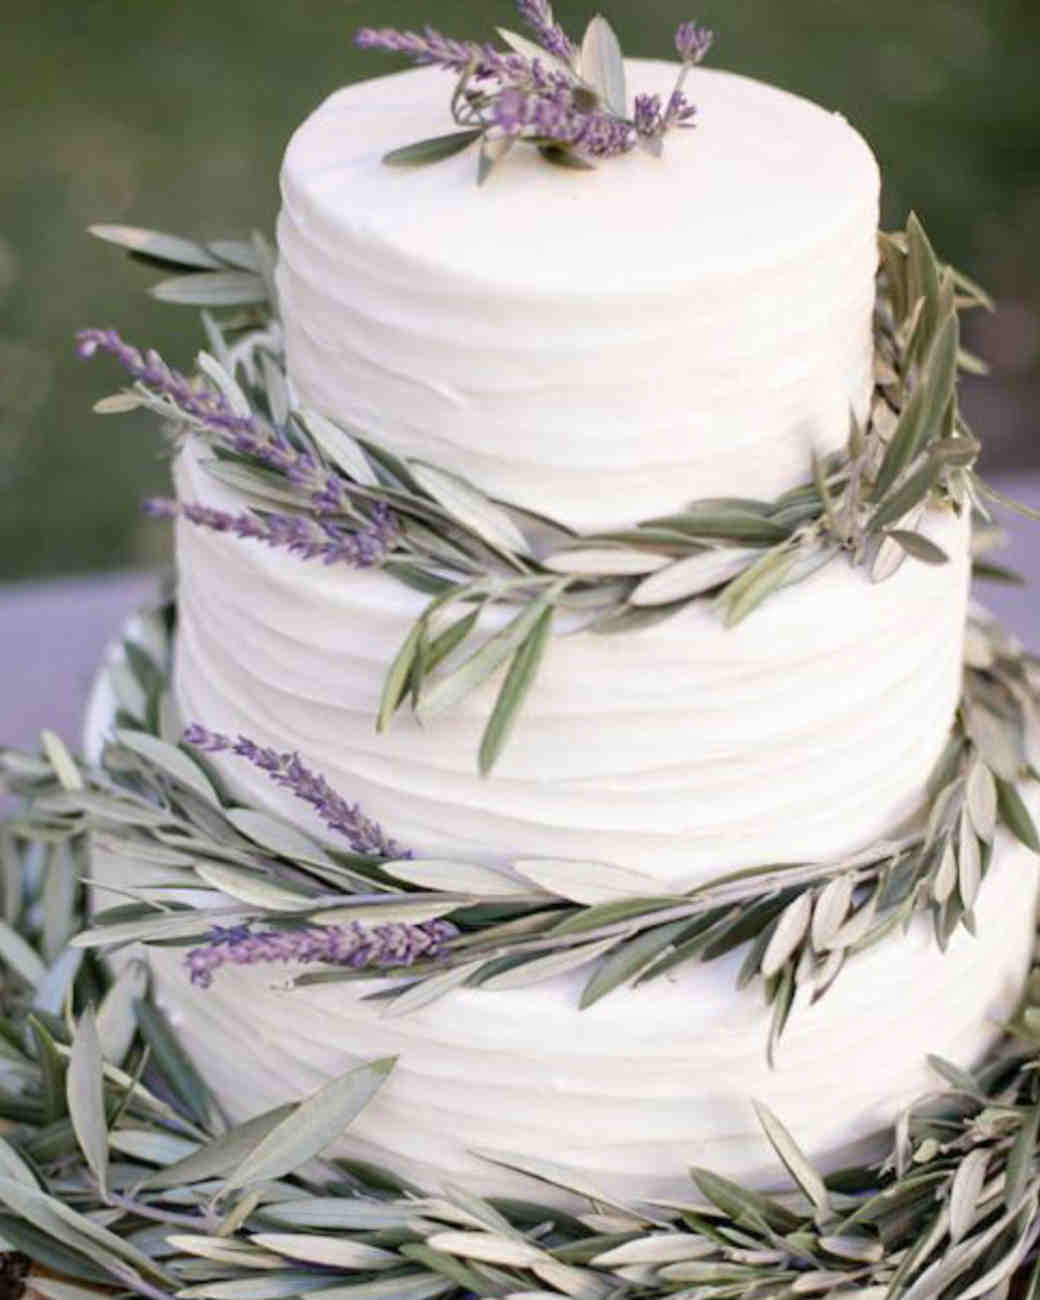 Vegan Wedding Cakes Portland Oregon